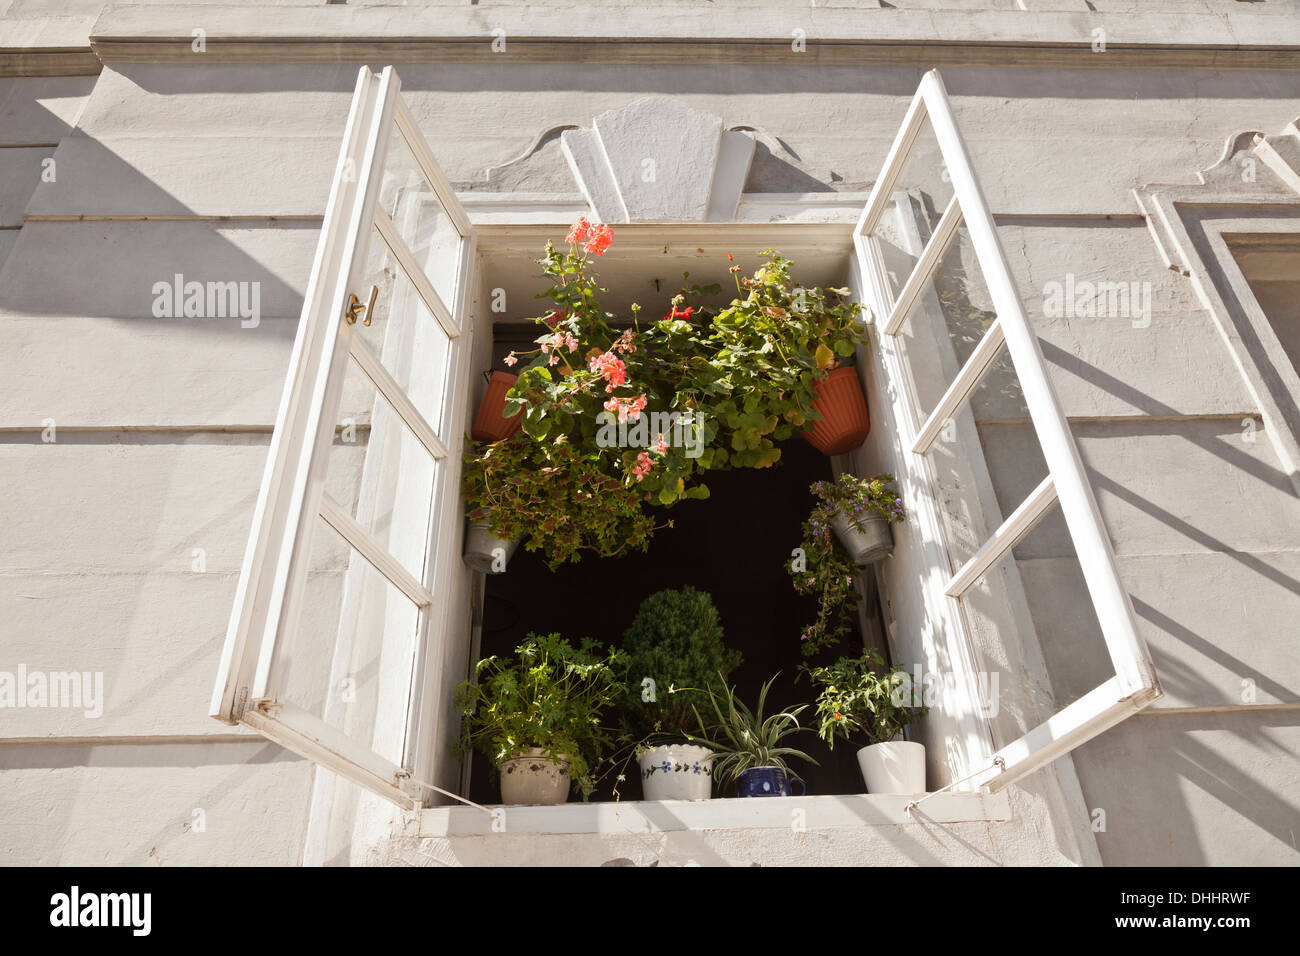 Open window with potted plants, old town of Prague, Czech Republic - Stock Image